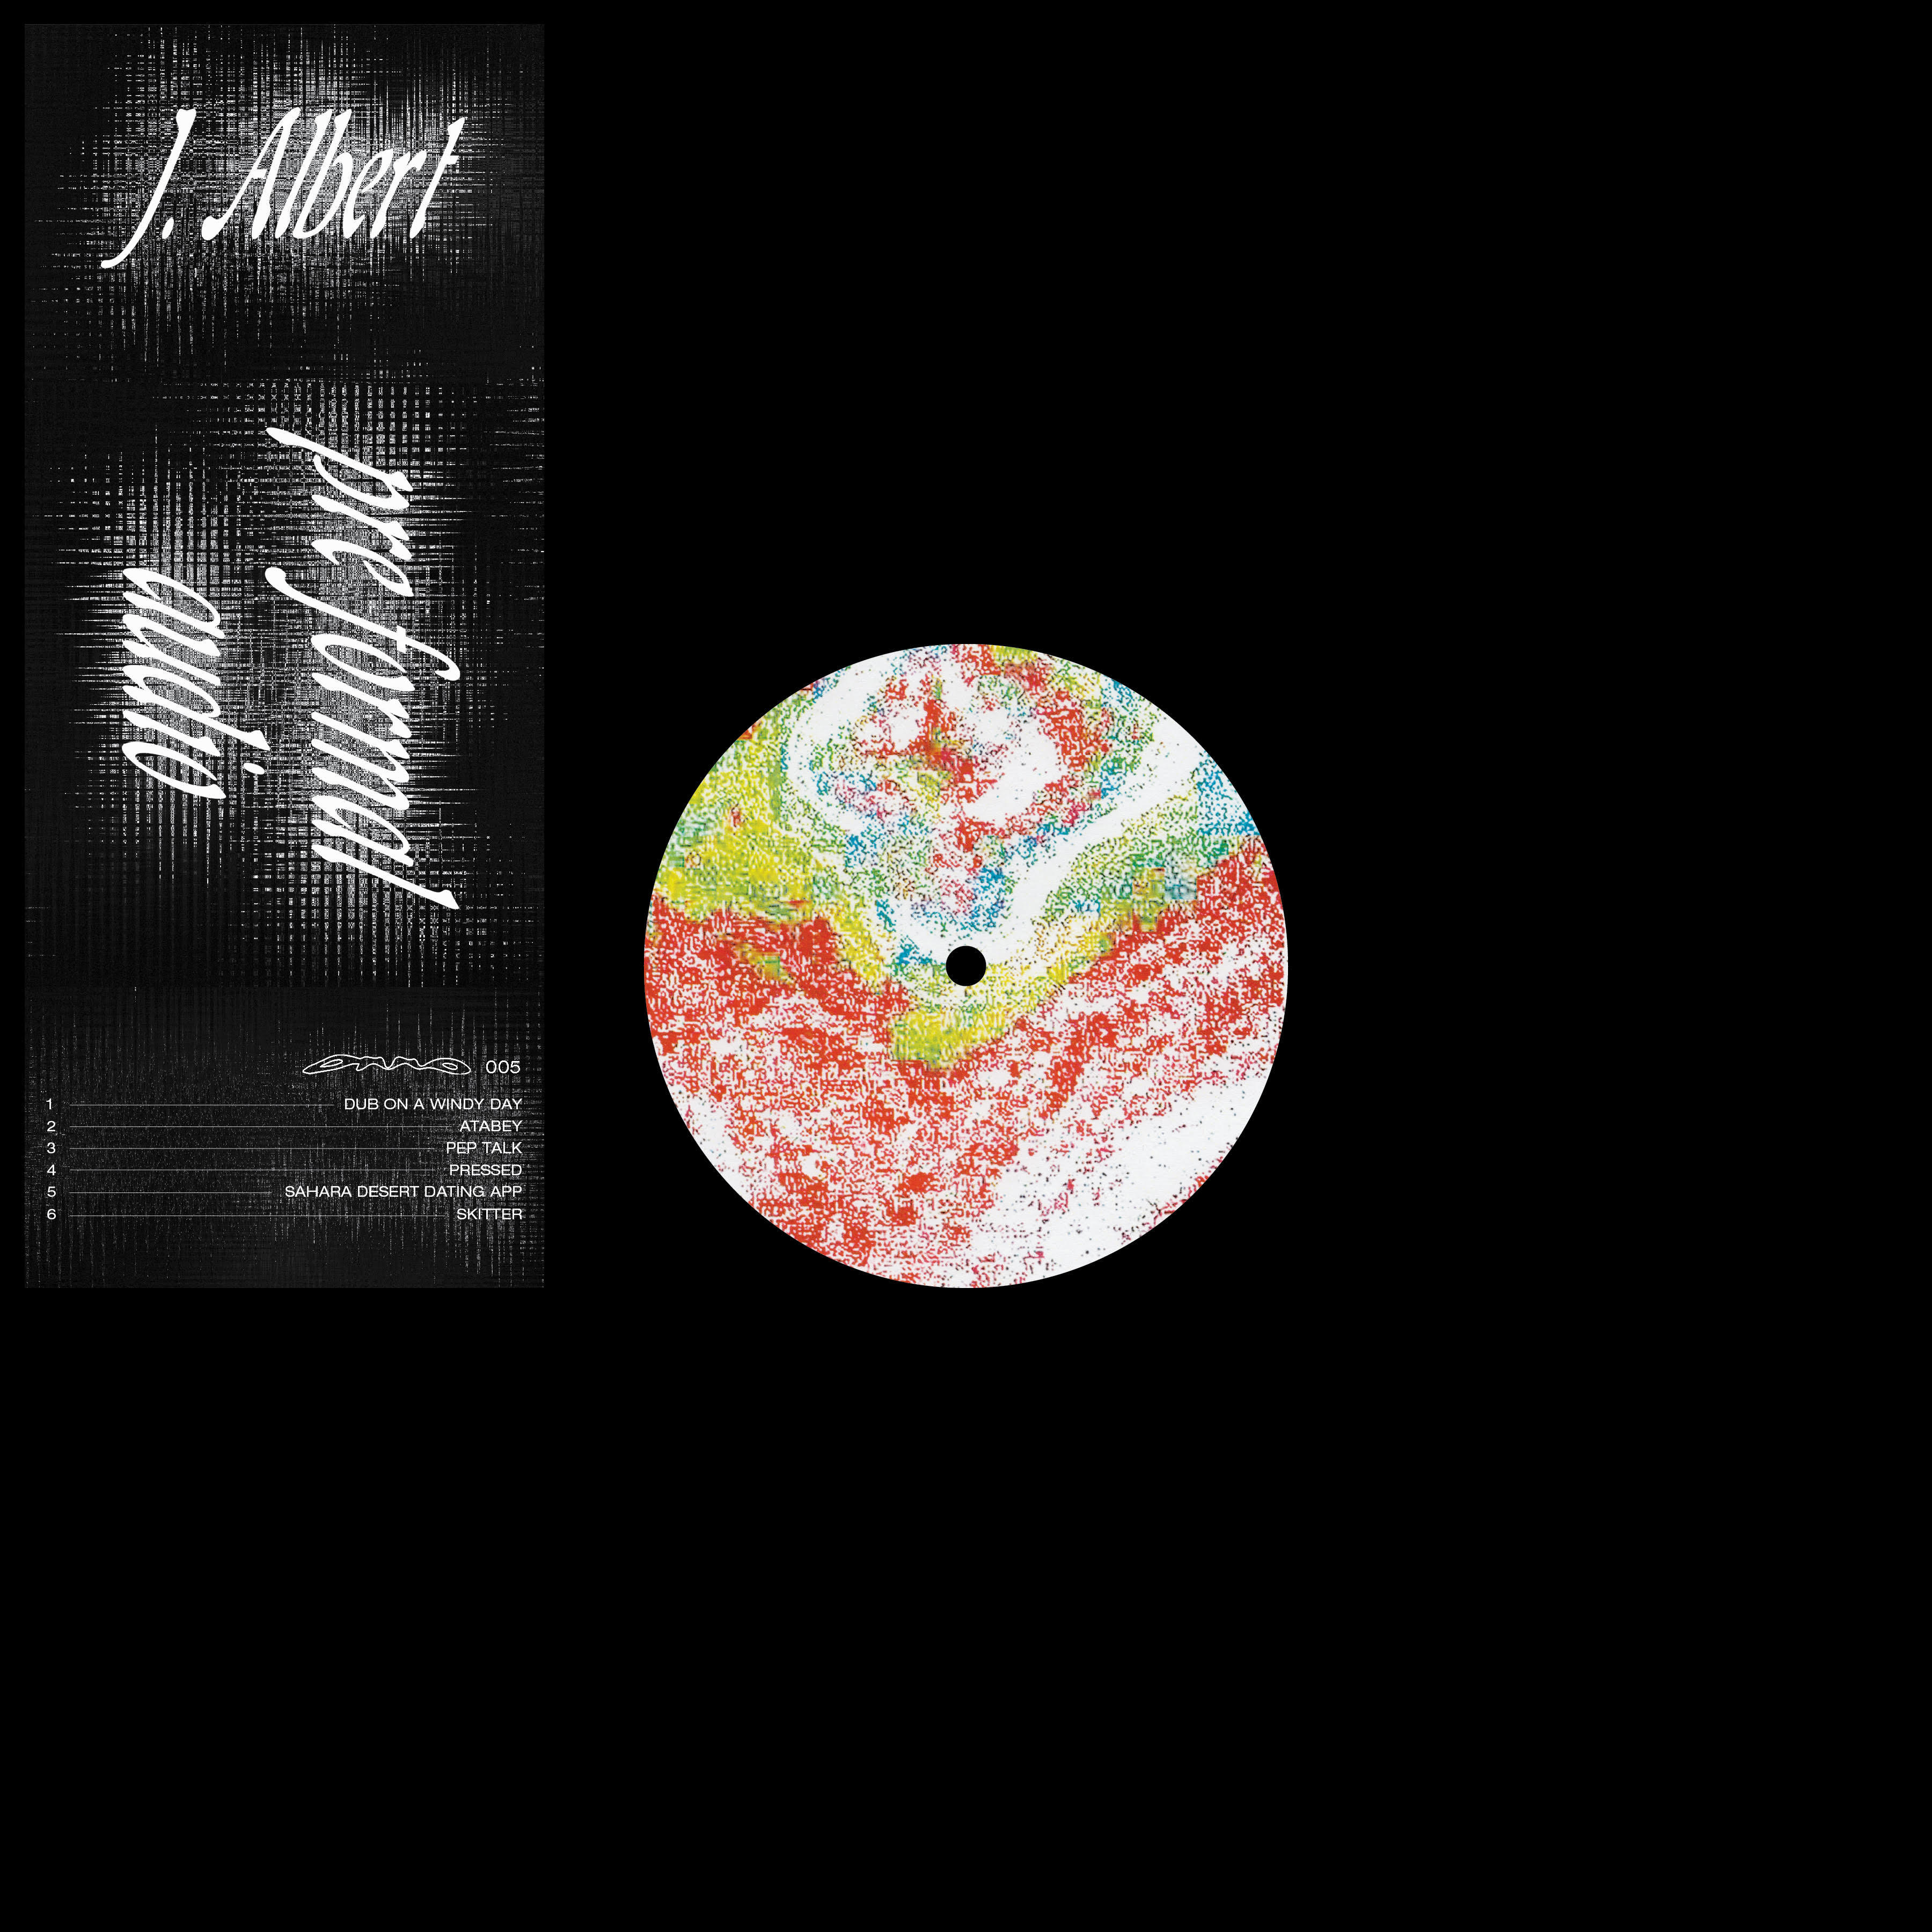 J. Albert/PRE FORMAL AUDIO EP 12""